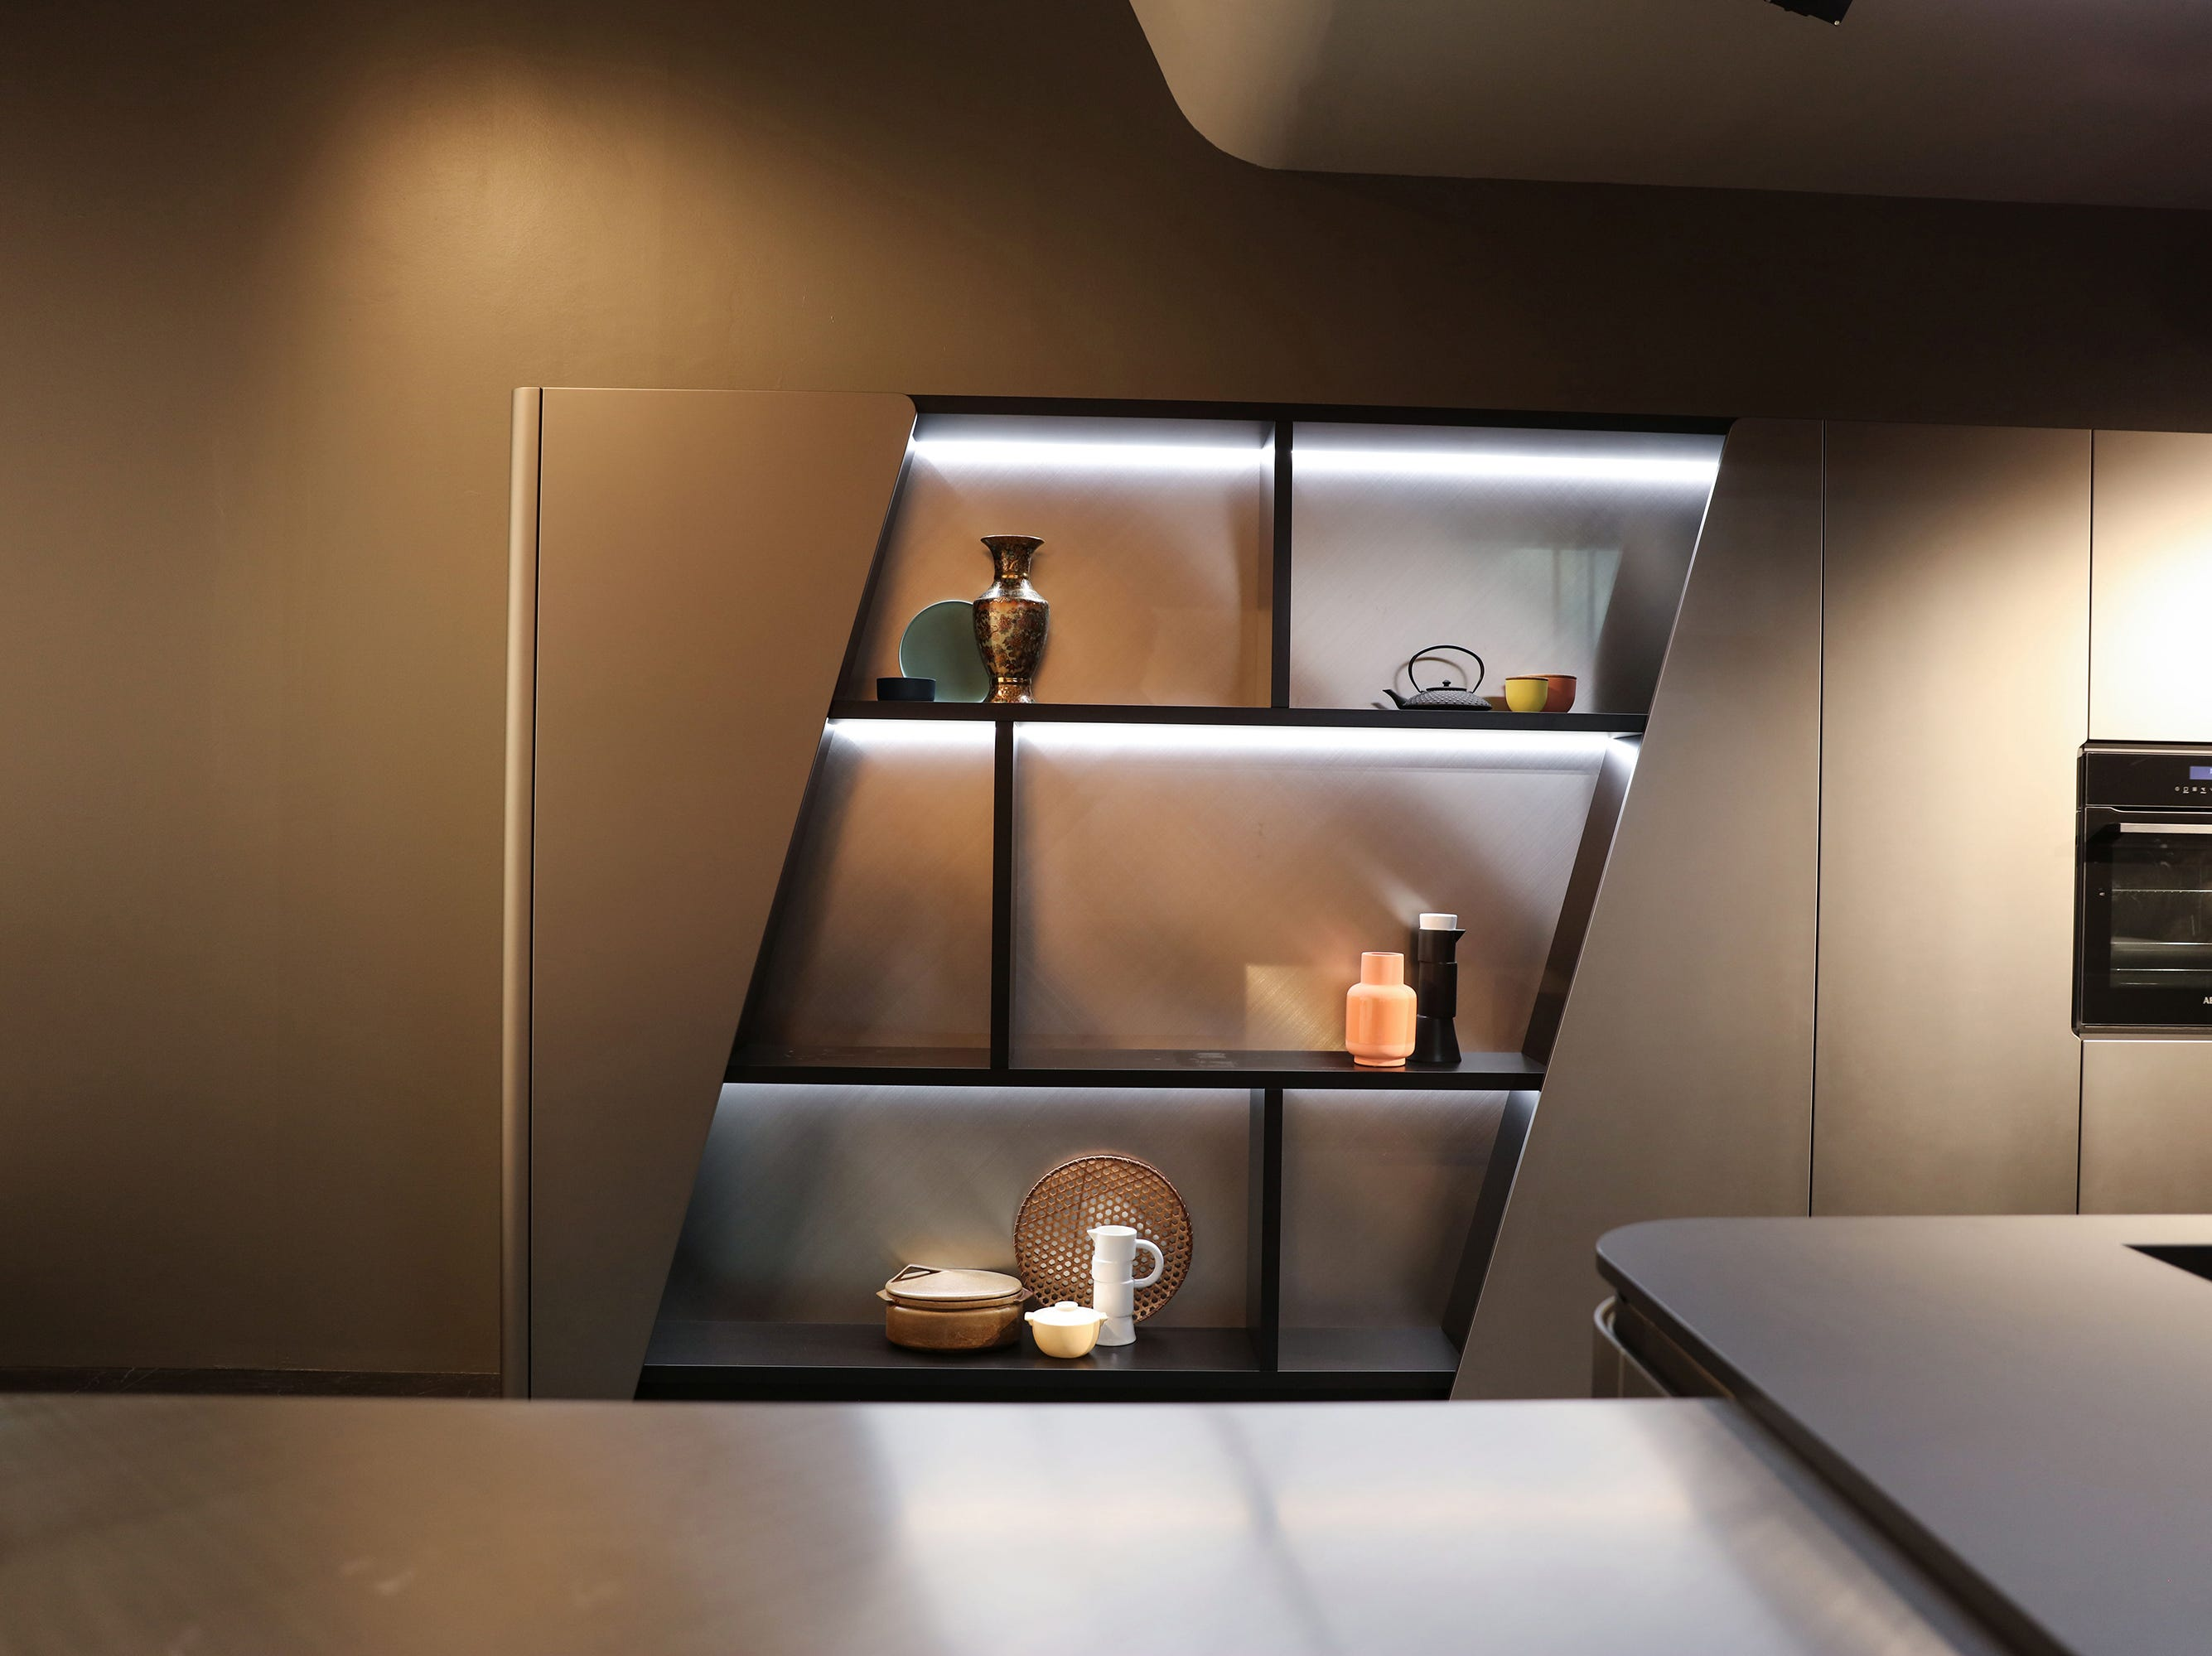 The illusion of shelves with angled sides was created by the side panels at Snaidero. But the shelving itself has a modern look, with its supersizing, stainless back and LED lighting.